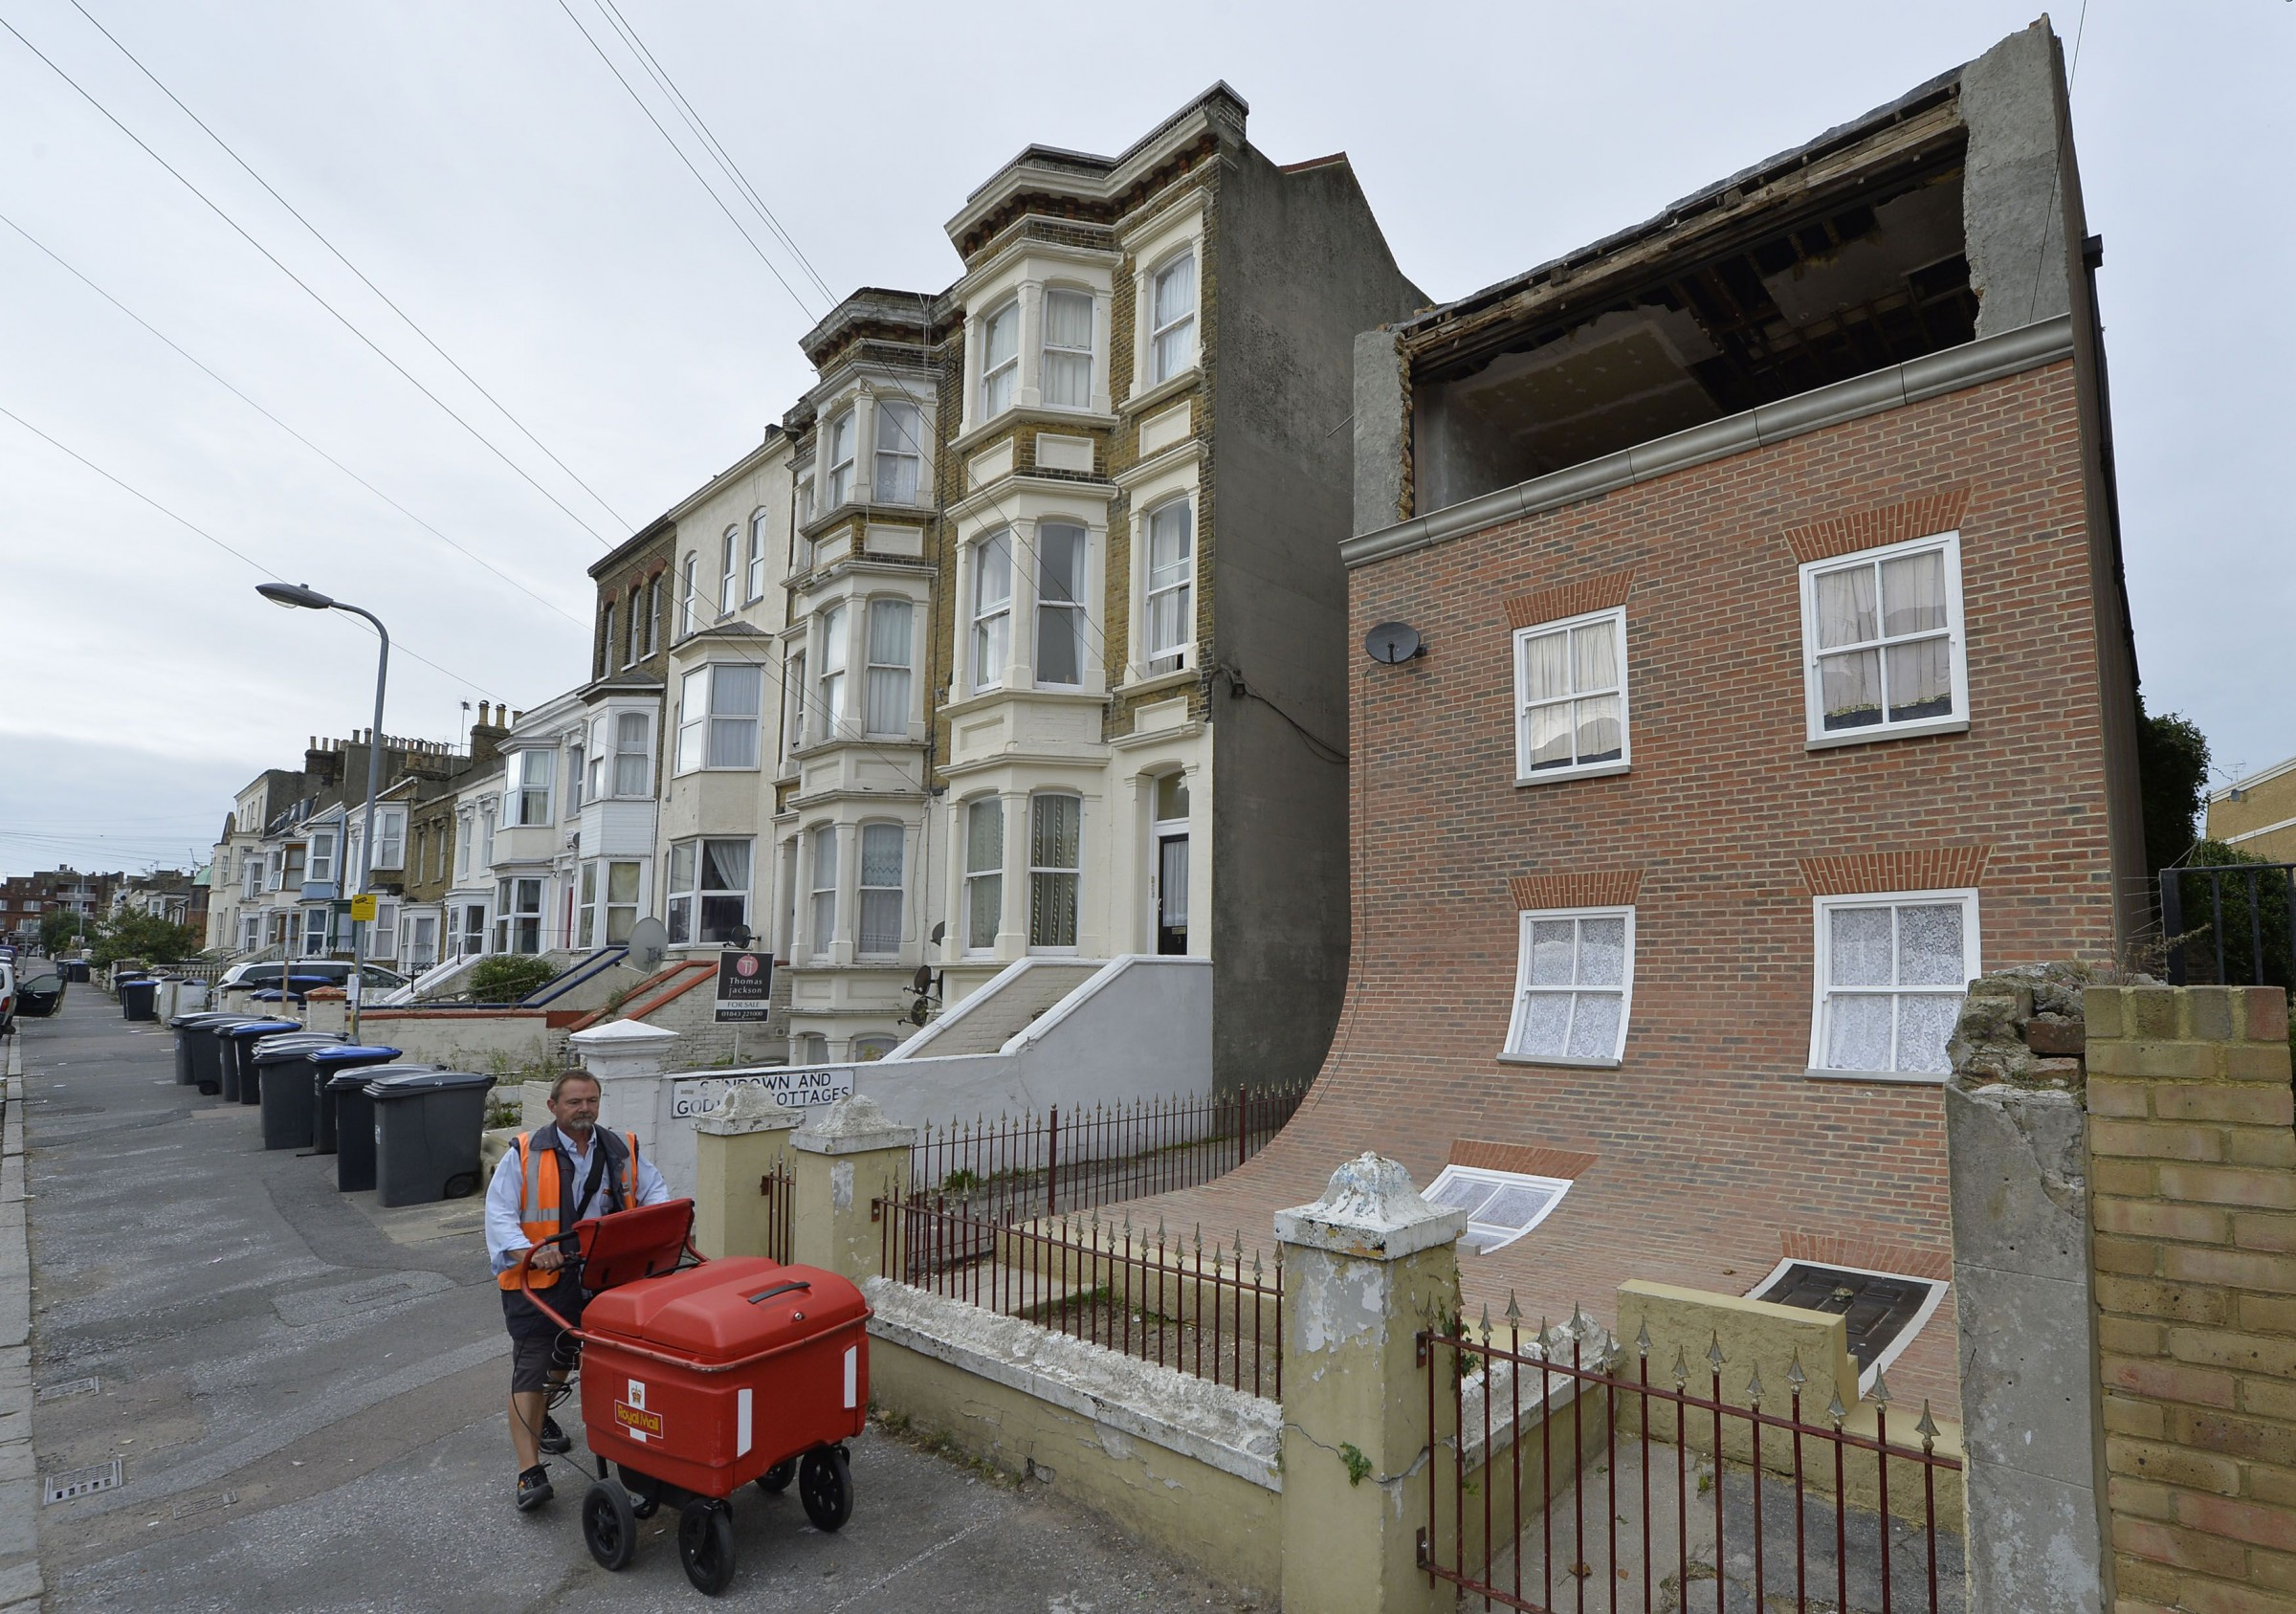 Postal worker Glenn Gray passes a piece of public art, depicting a sliding house in a residential road in Margate, southern England October 9, 2013.